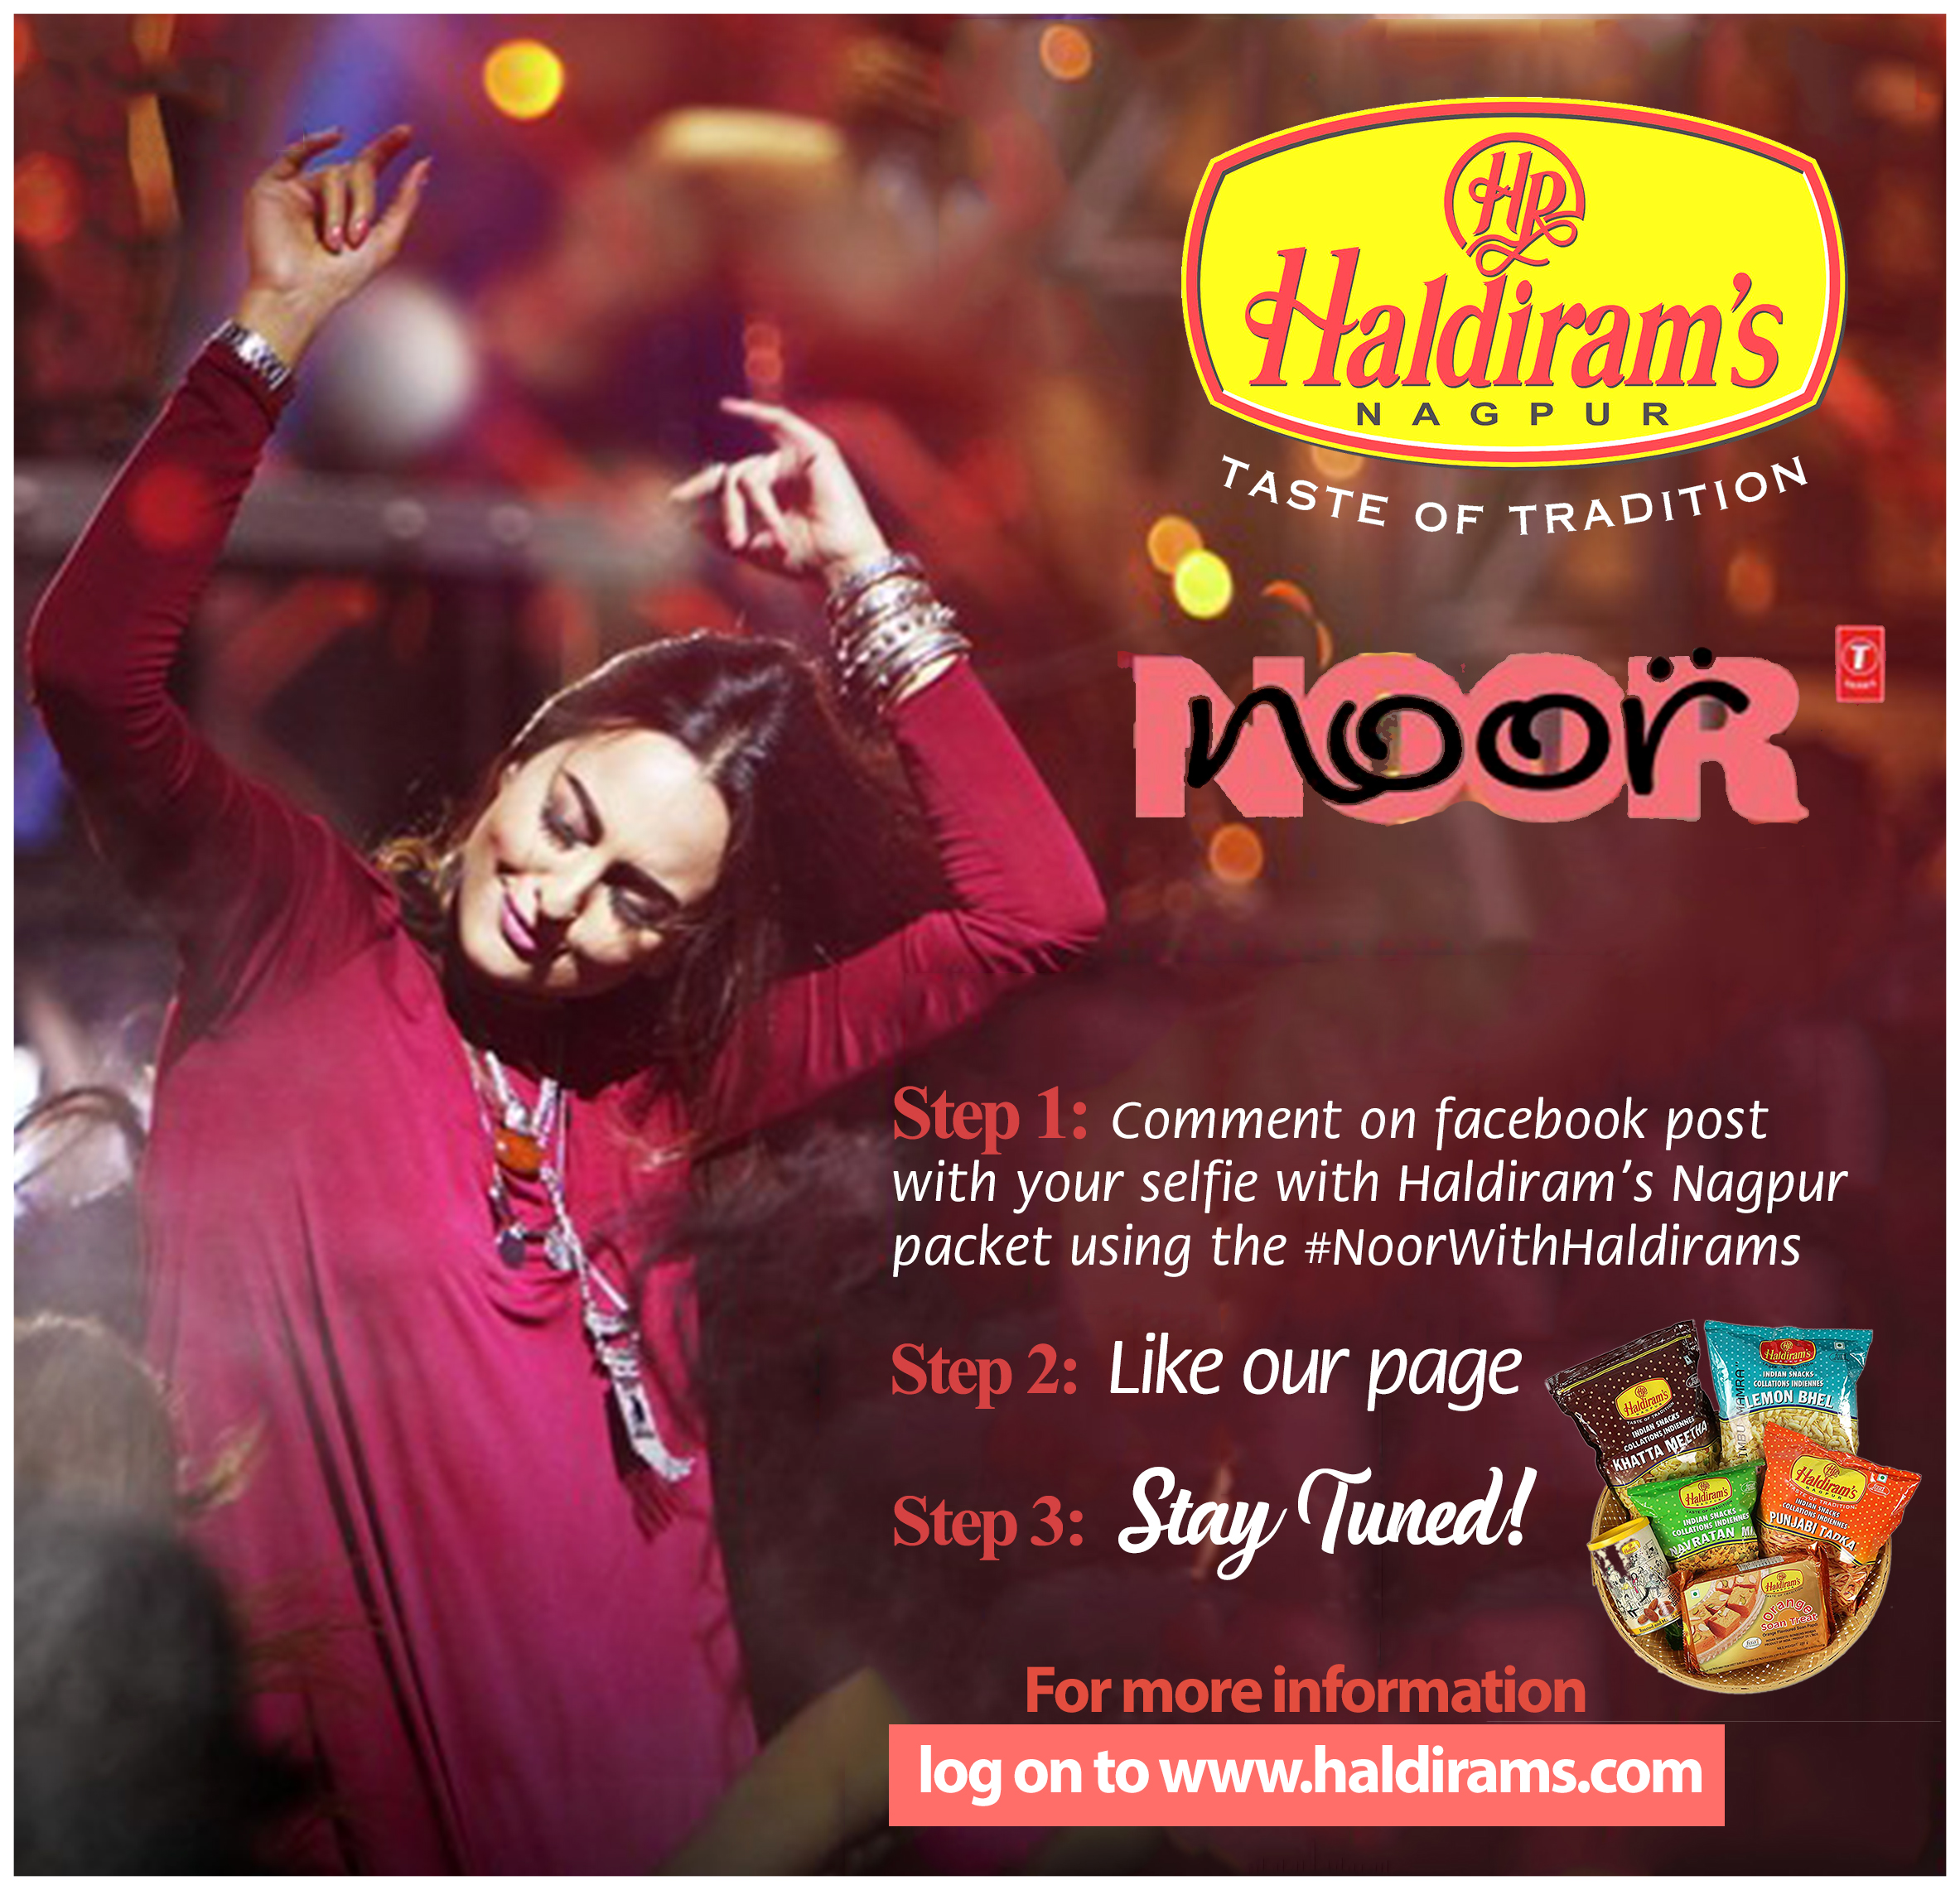 Haldirams, Haldirams Nagpur, Haldirams Nagpur Reviews, Haldirams Offer, Haldirams Contest, Noor With Haldirams